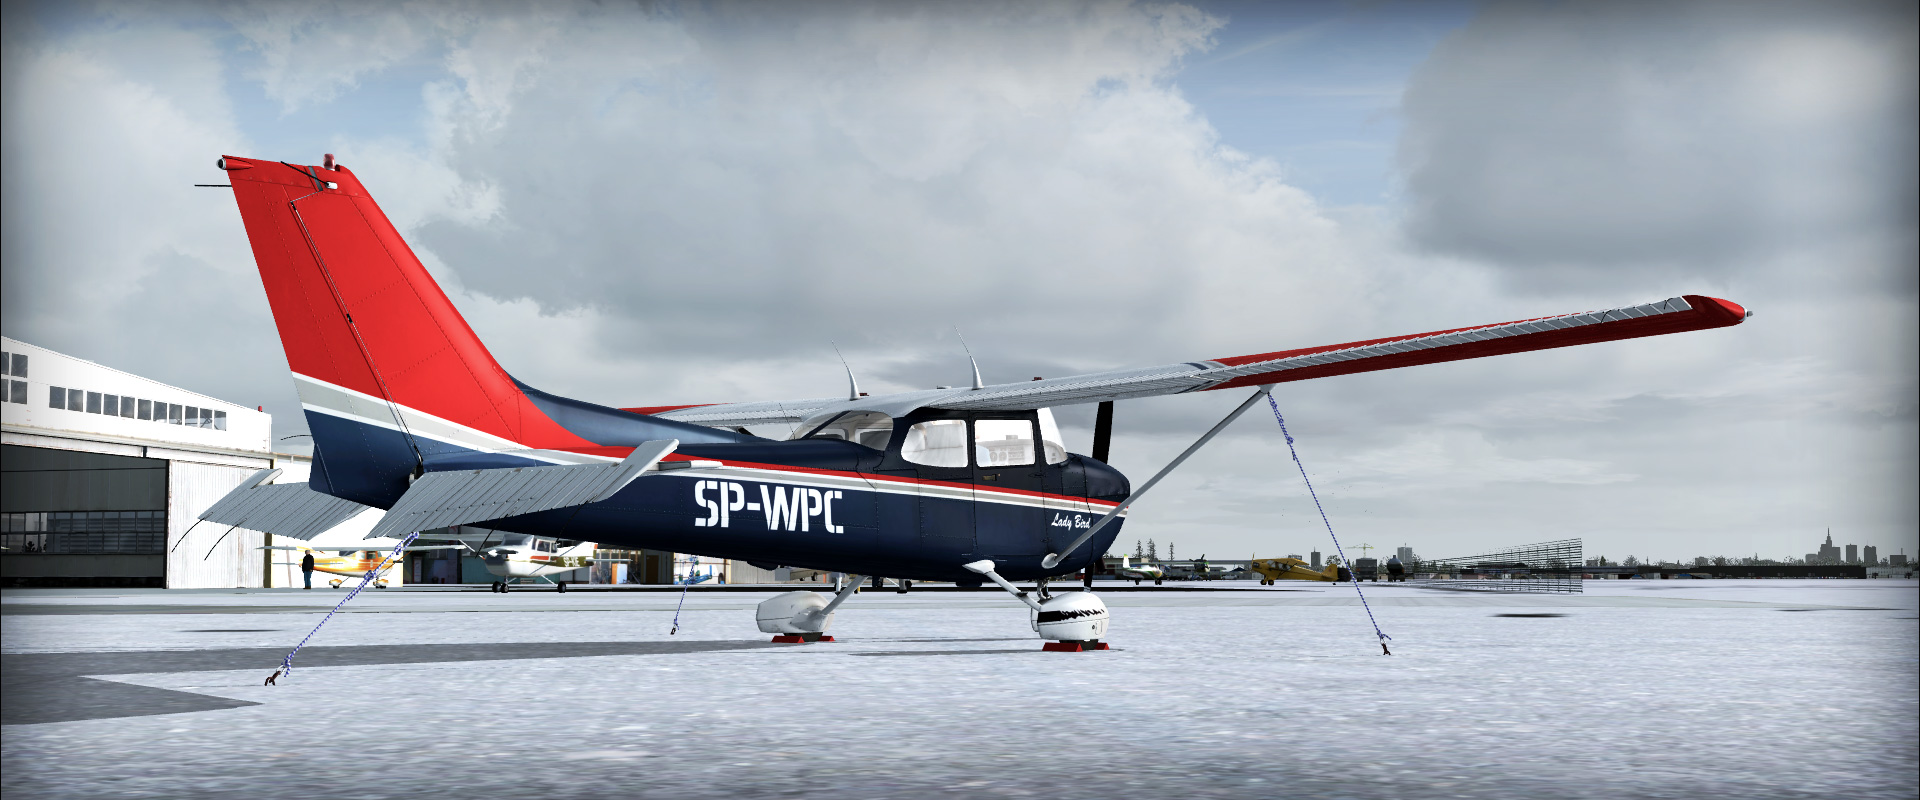 Cessna 172 Carenado Fsx Download - fasrspeed